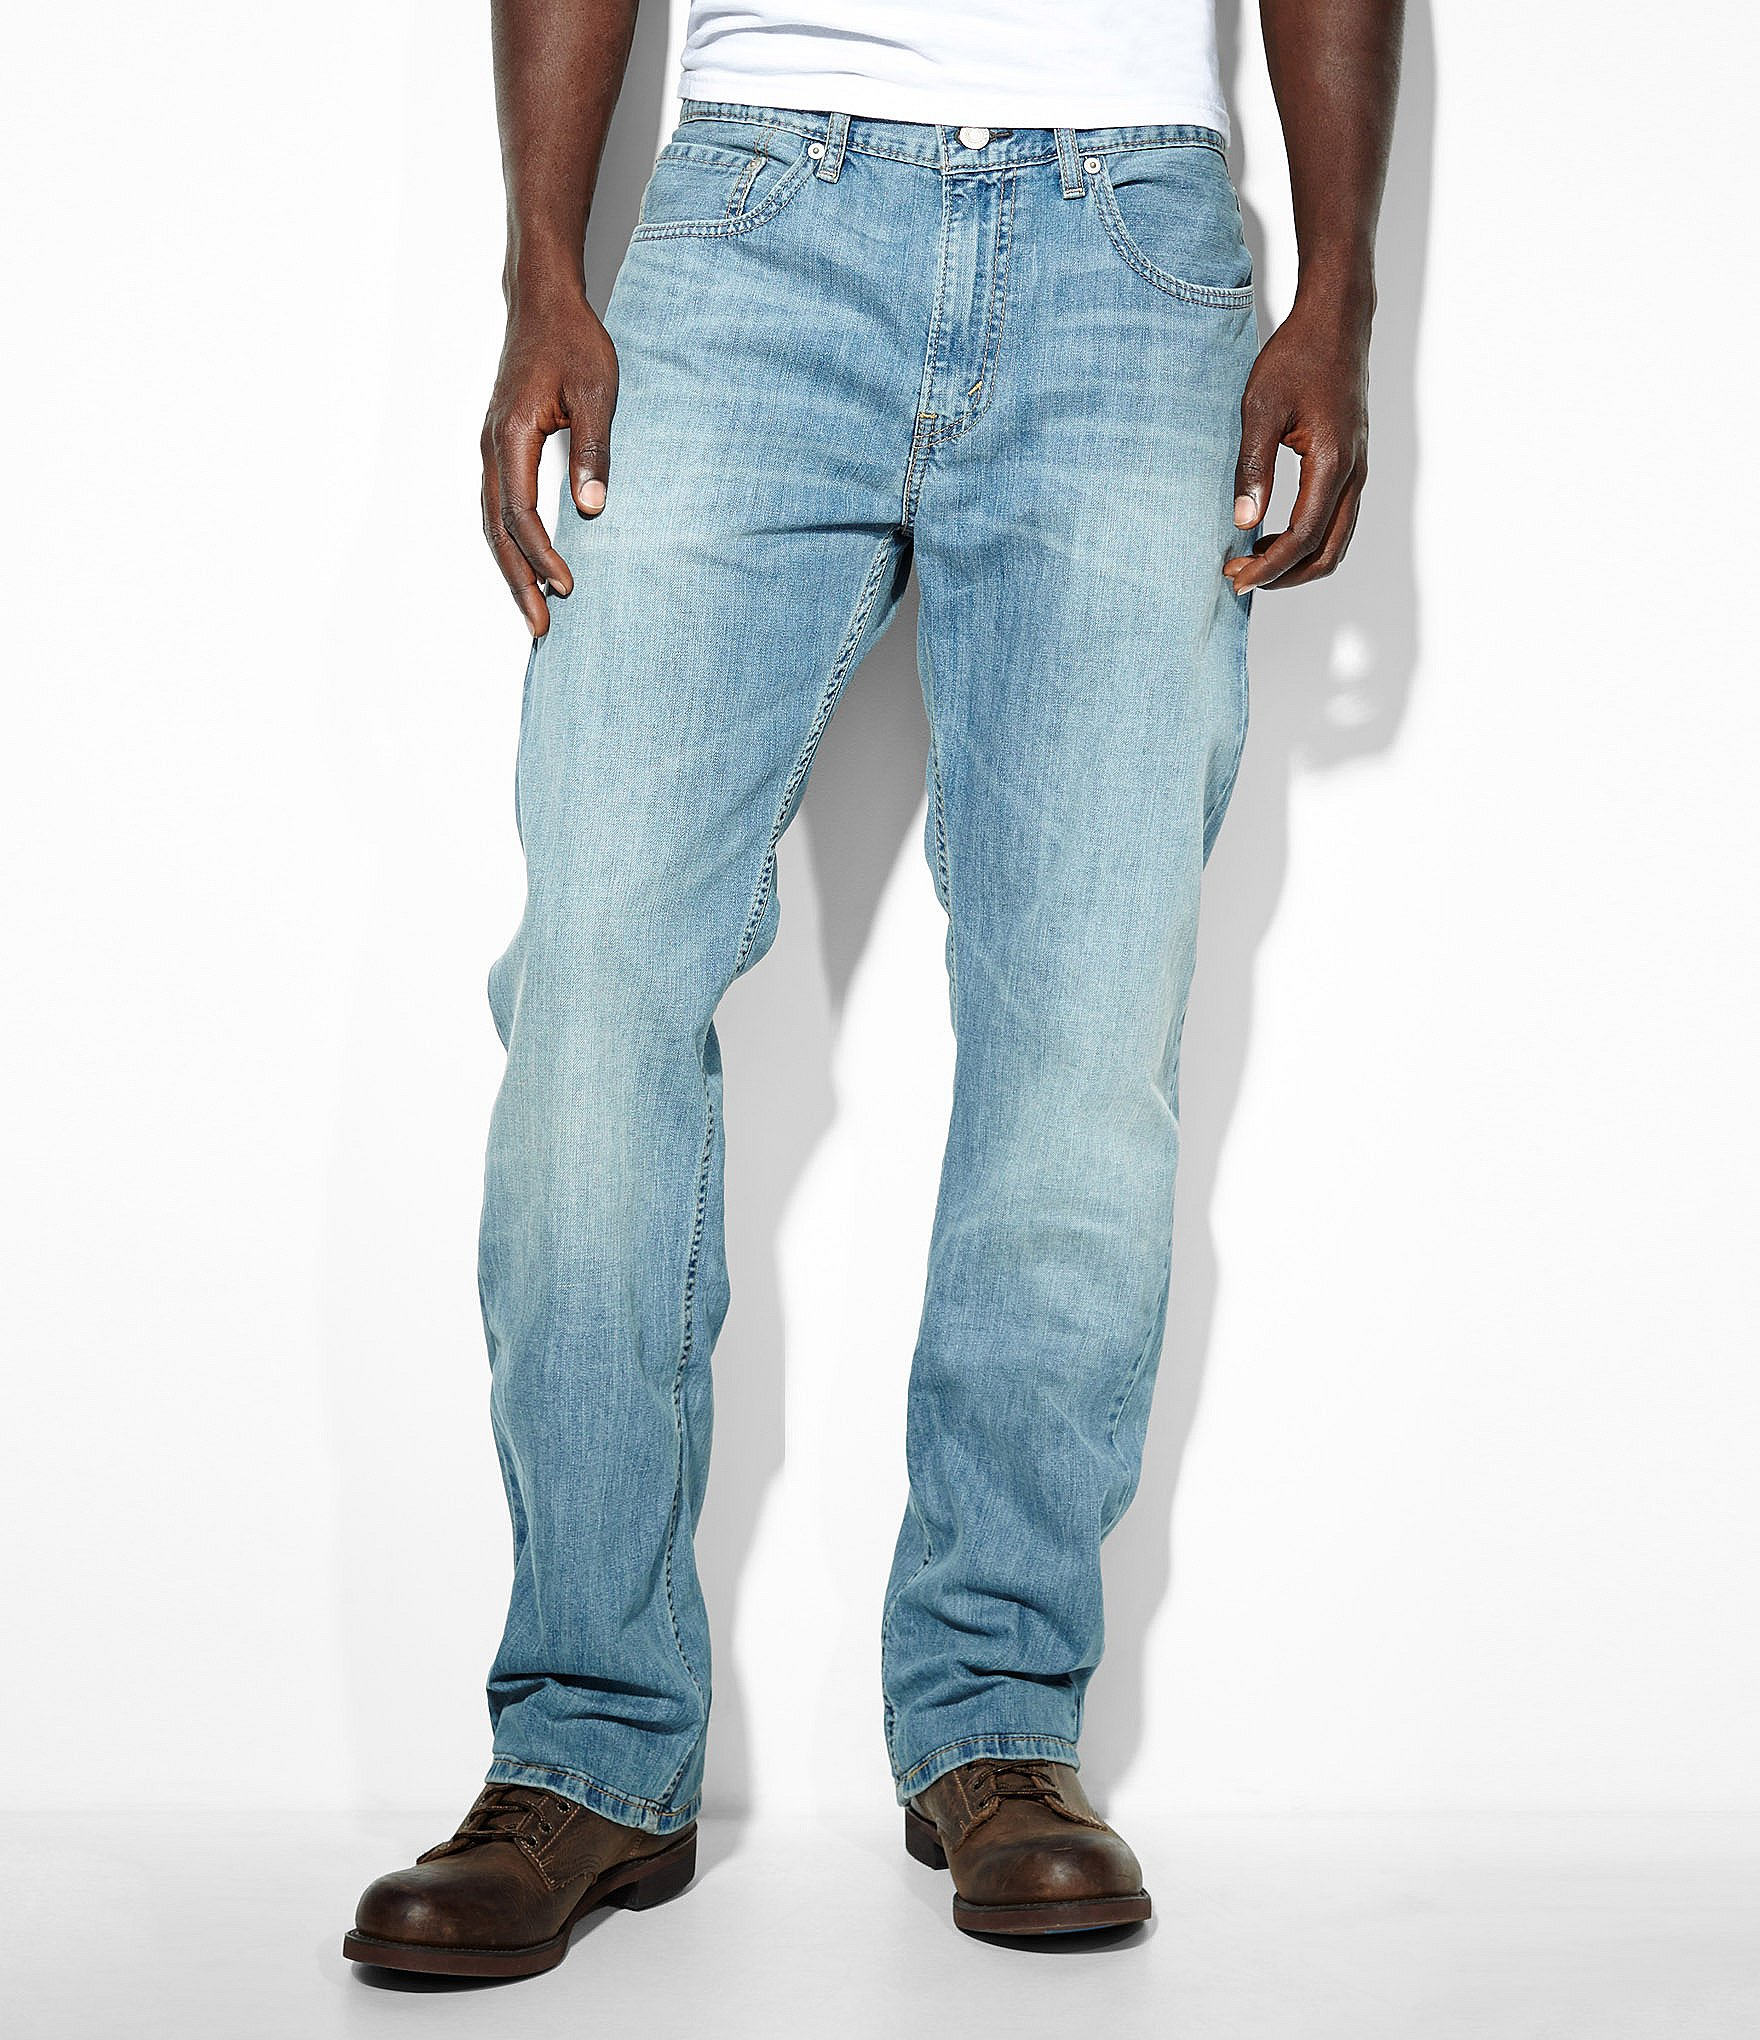 Levis Clearance Sale We carry a huge selection of Levis Jeans, Levis Jackets, Levis , Dickies, DBen Davis, Sullen and much more. We specialize in all .